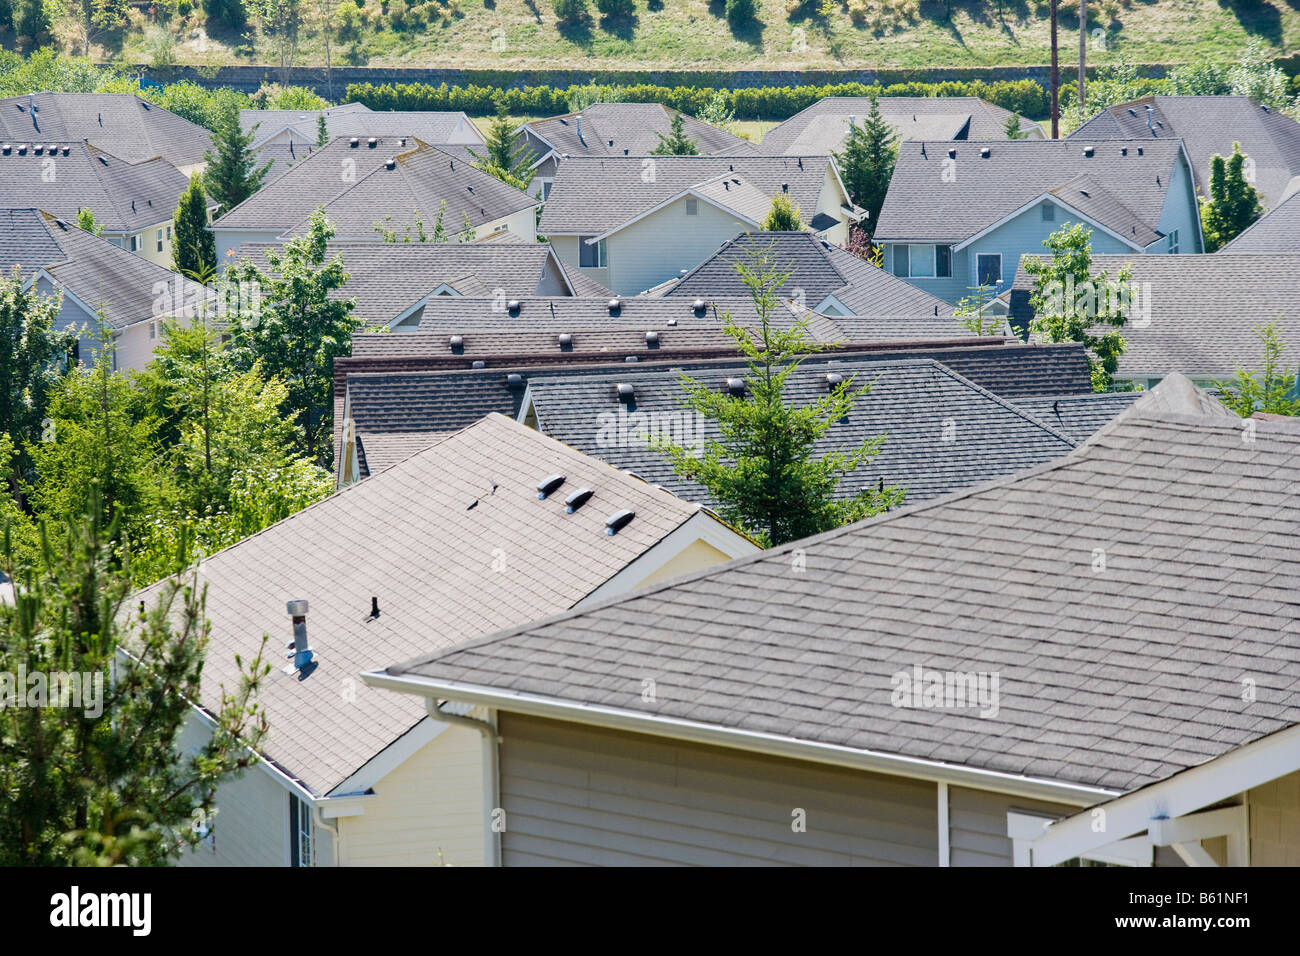 Rooftops of a housing development in the Issaquah Highlands W ashington United States Stock Photo